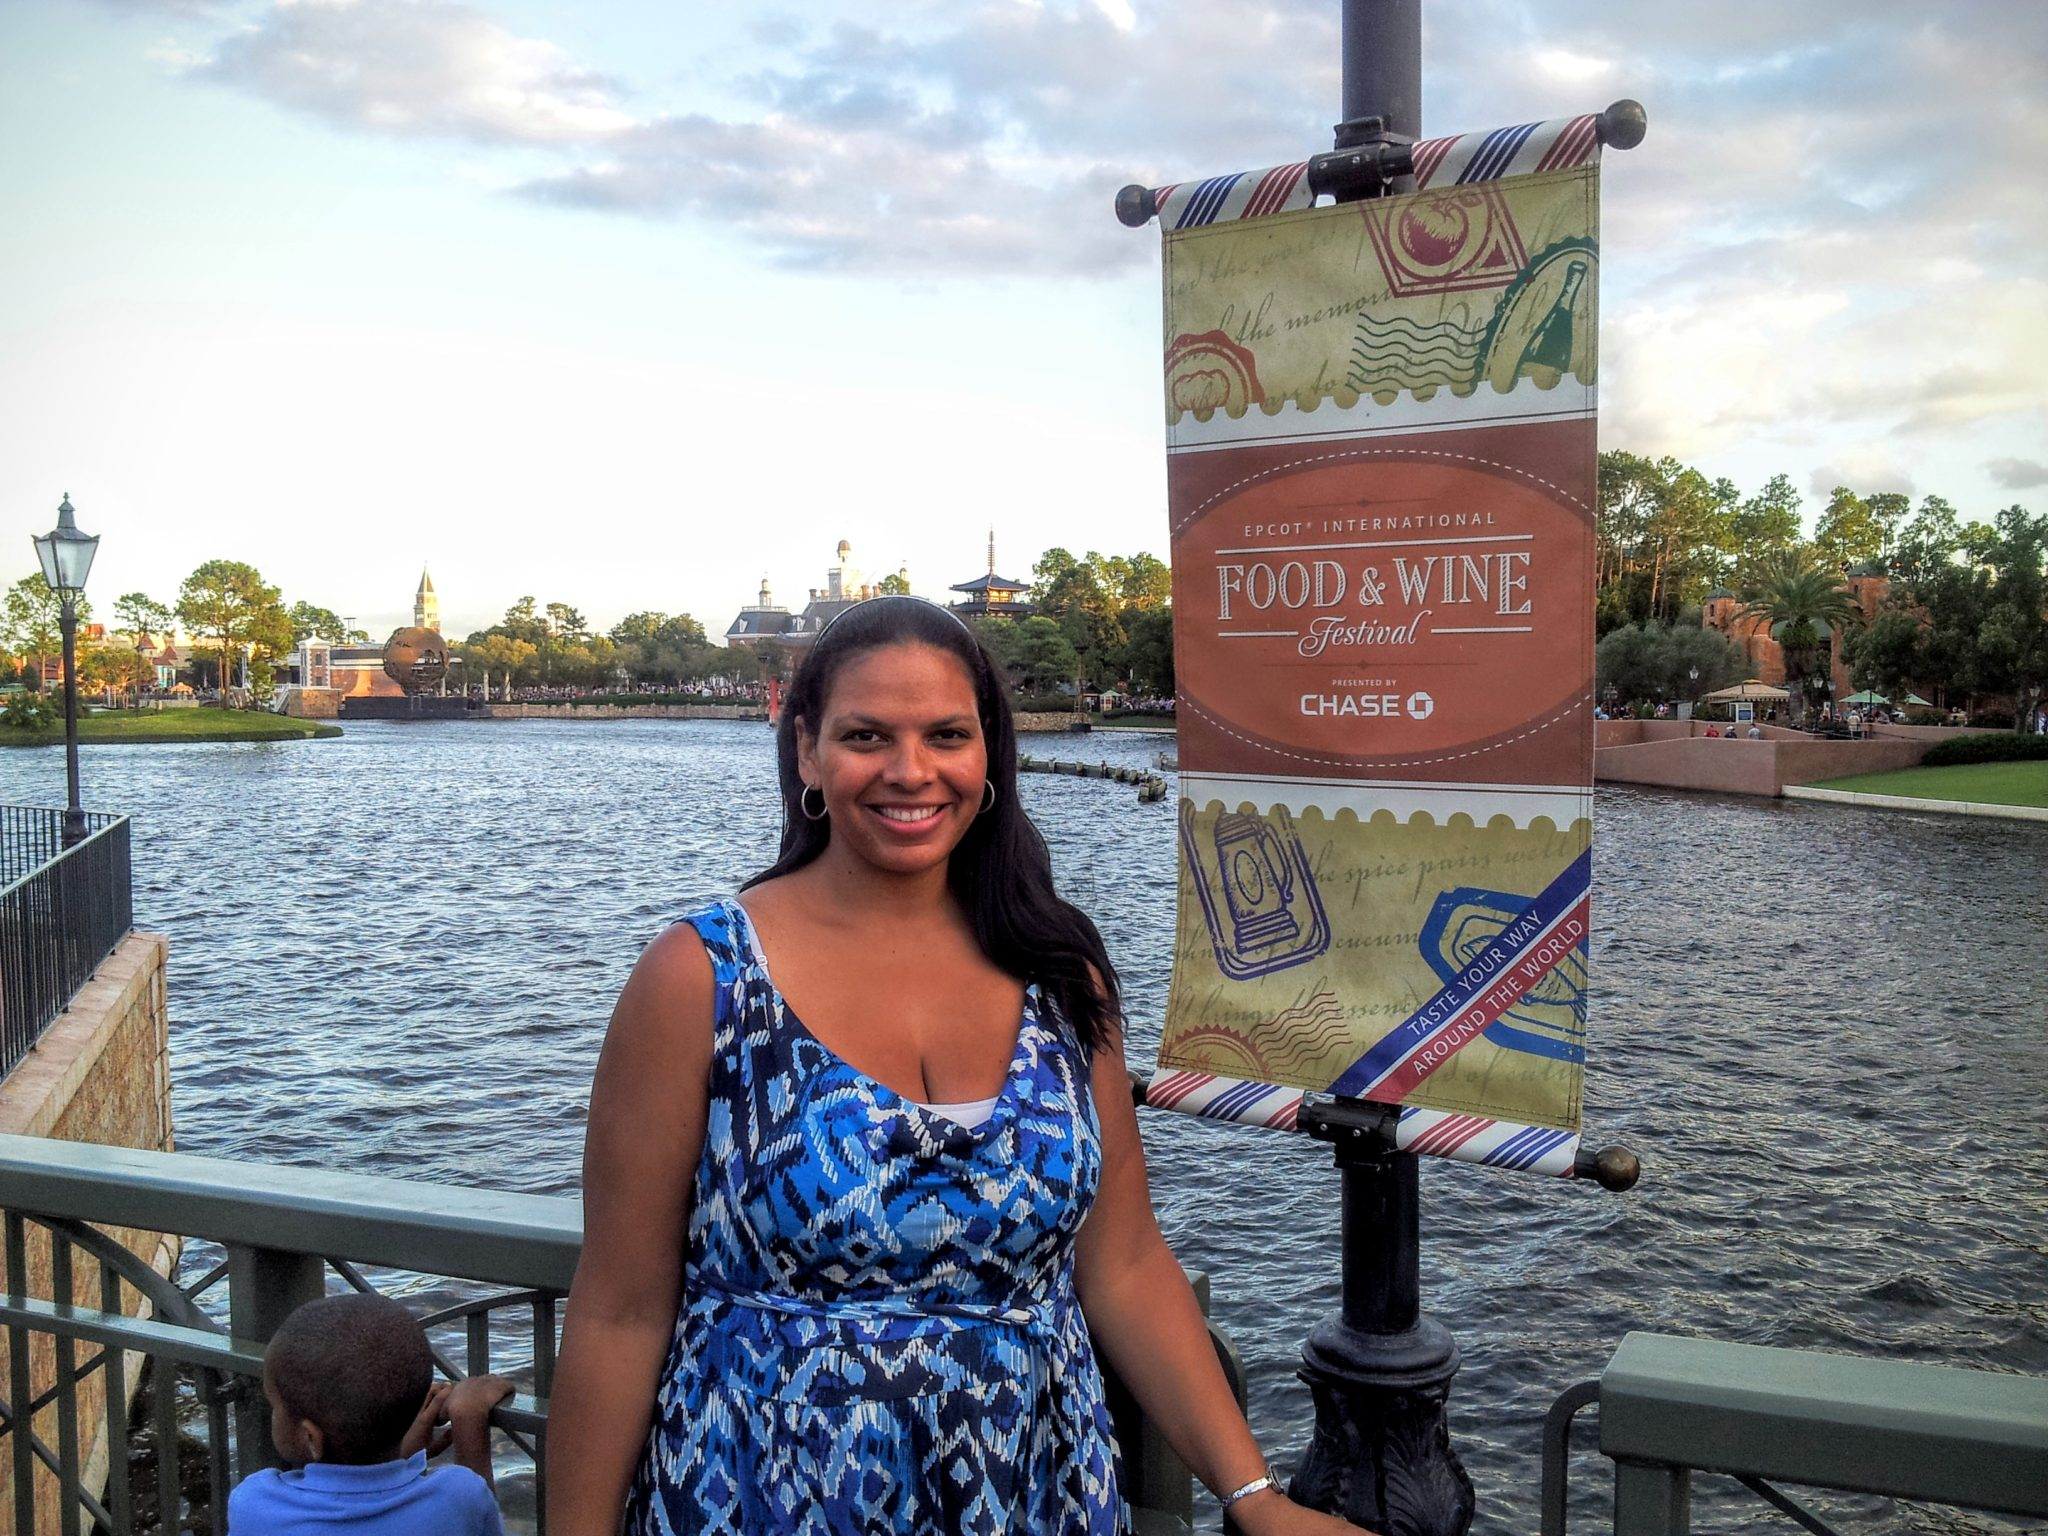 5 Tips to Make the Most of Your Epcot Food & Wine Festival Experience